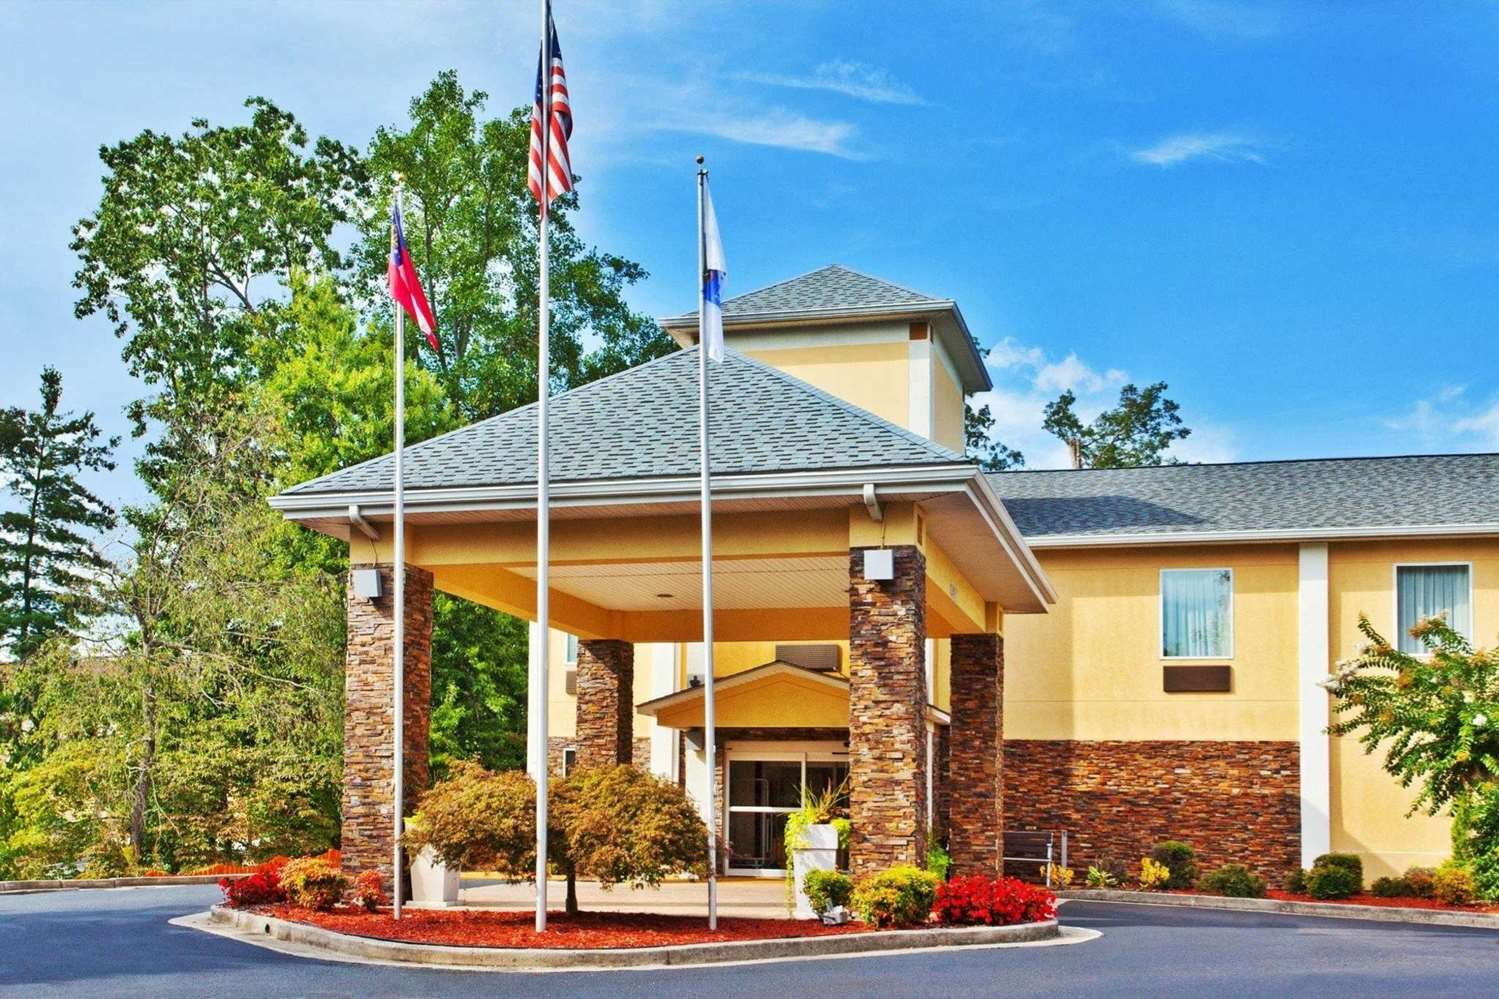 Holiday Inn Express Blairsville